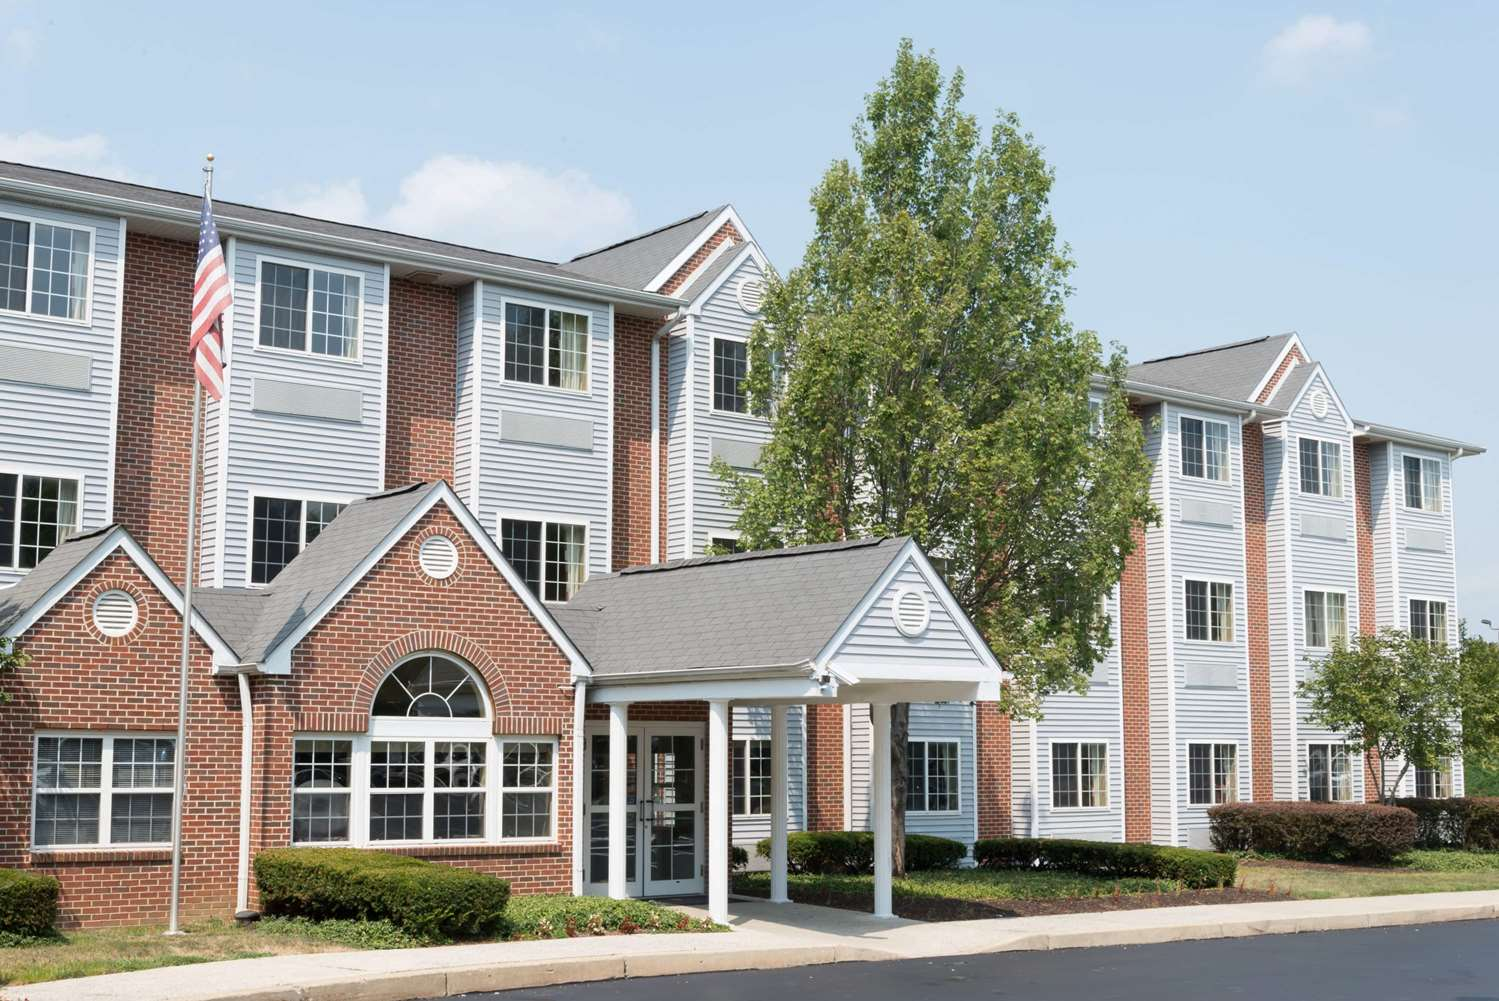 Exterior view - Microtel Inn & Suites by Wyndham West Chester